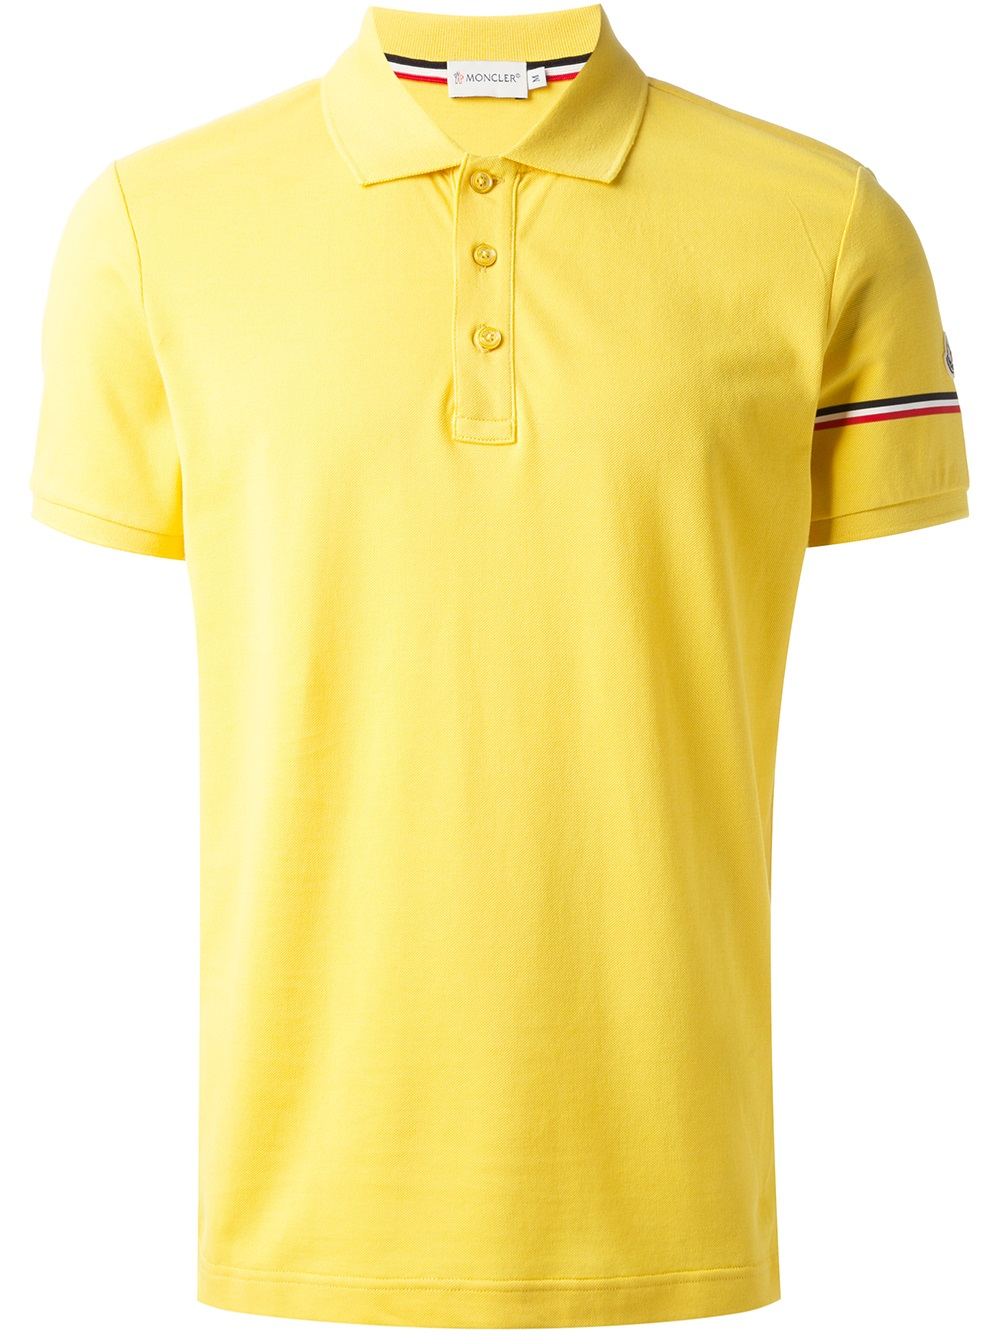 yellow moncler t shirt